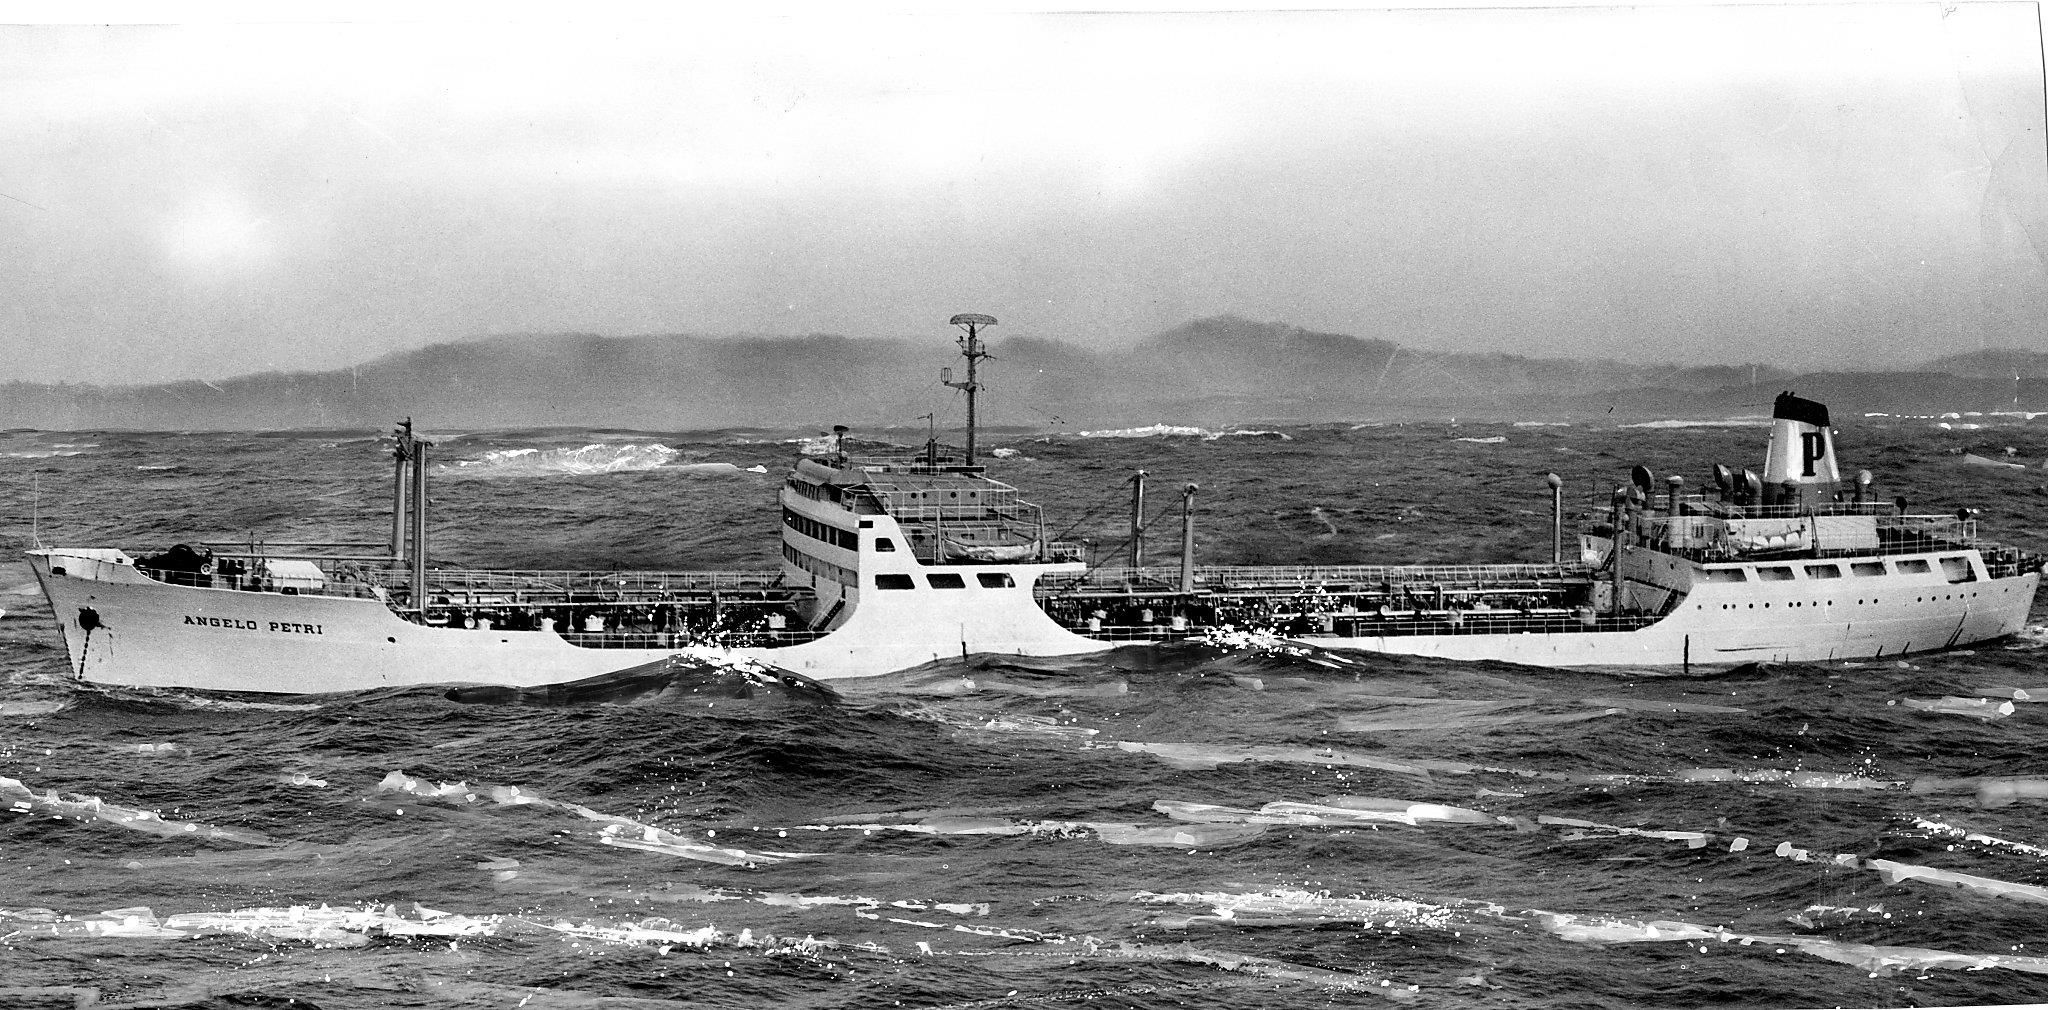 When world's largest wine ship nearly sunk outside the Golden Gate